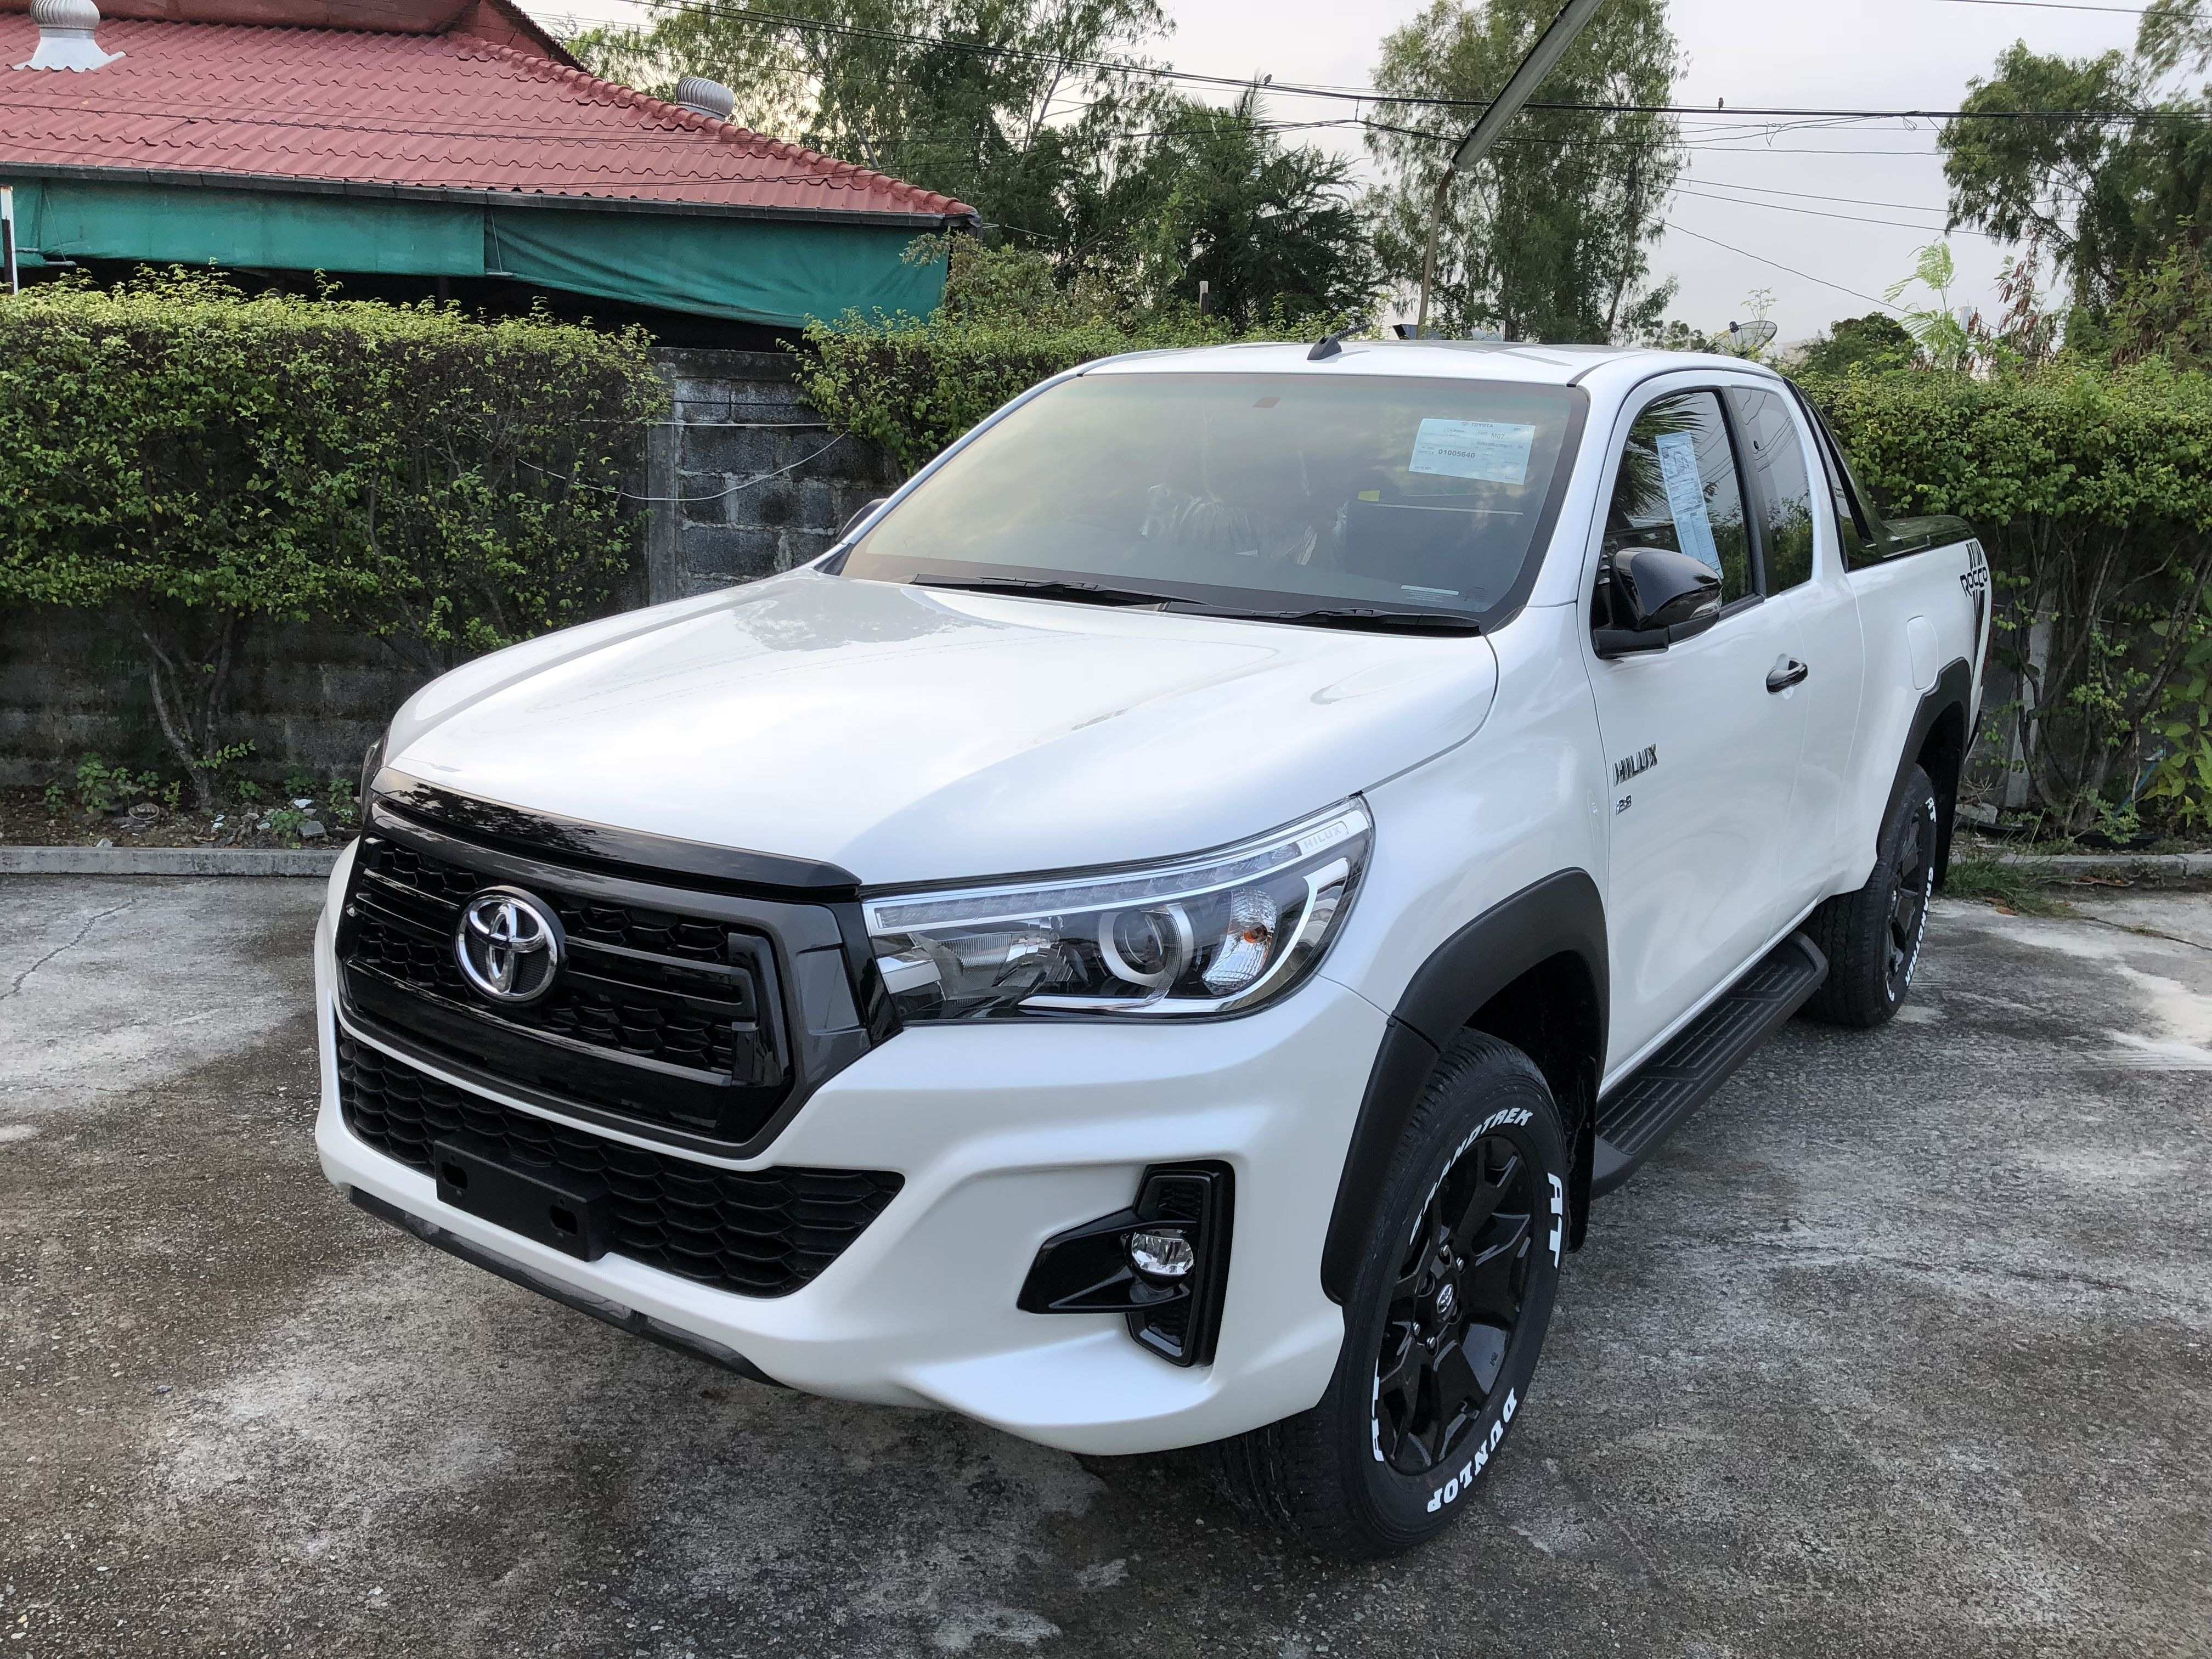 72 Concept of 2019 Toyota Dakar First Drive for 2019 Toyota Dakar